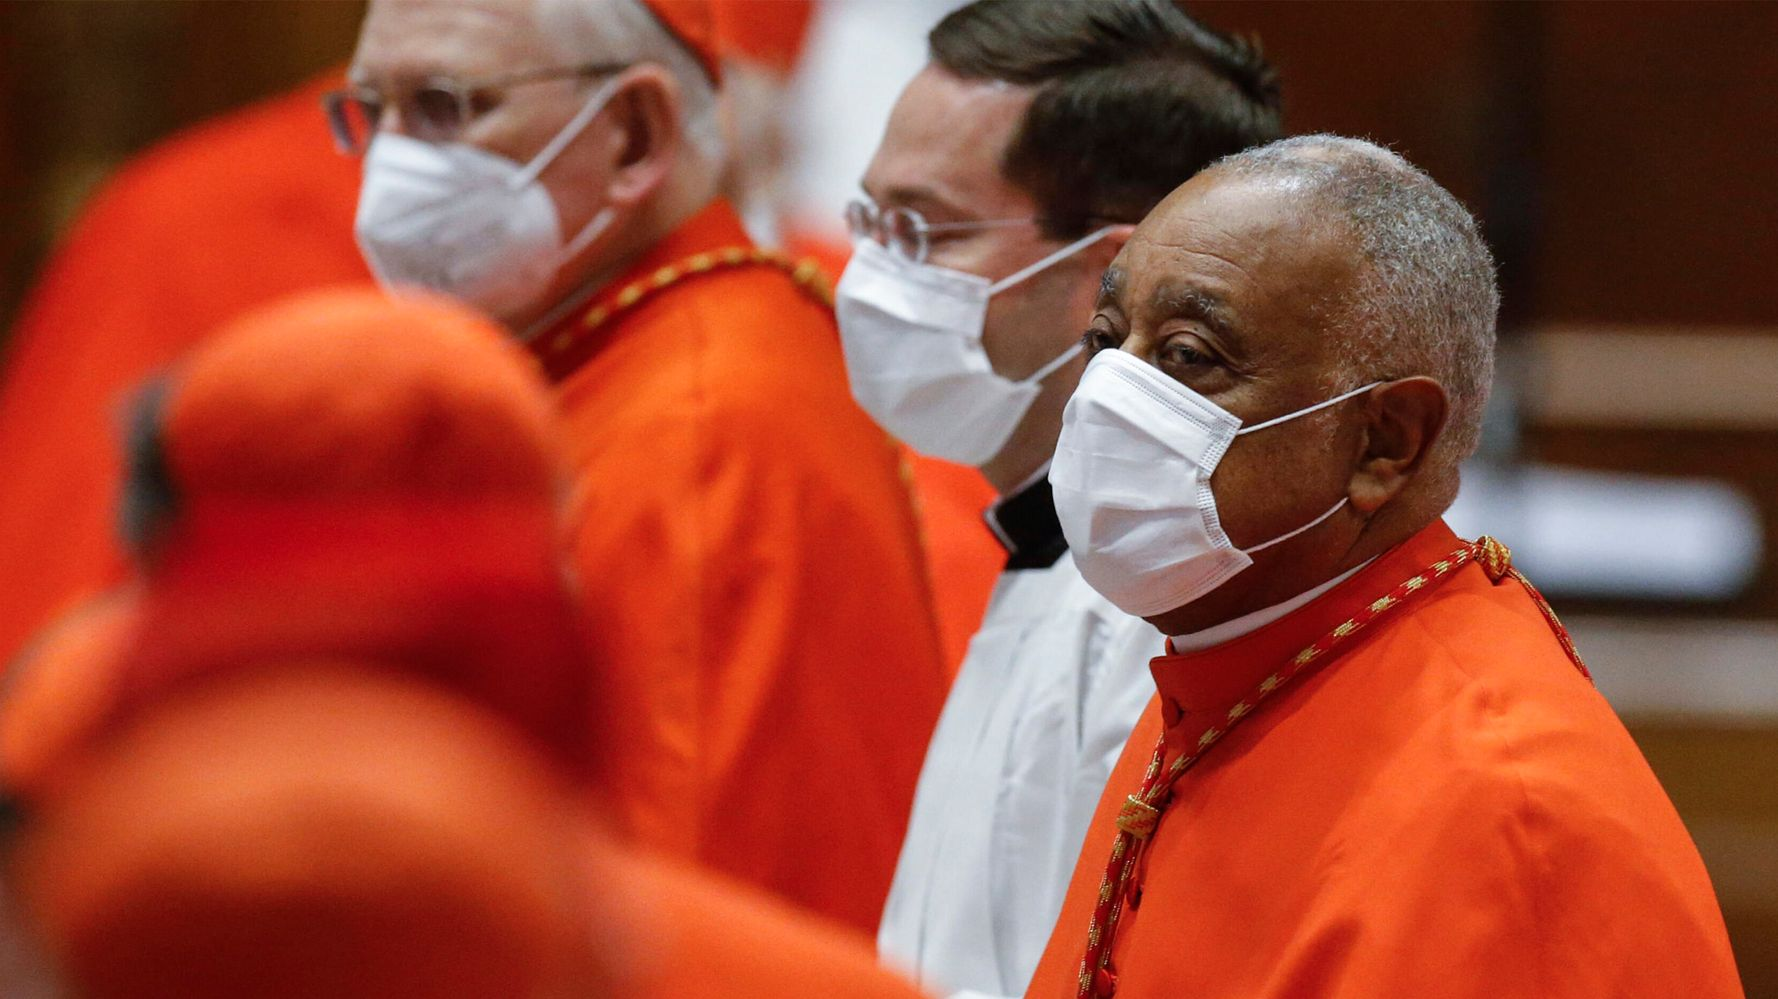 Pope To Elevate 13 New Cardinals Including First African American Cardinal